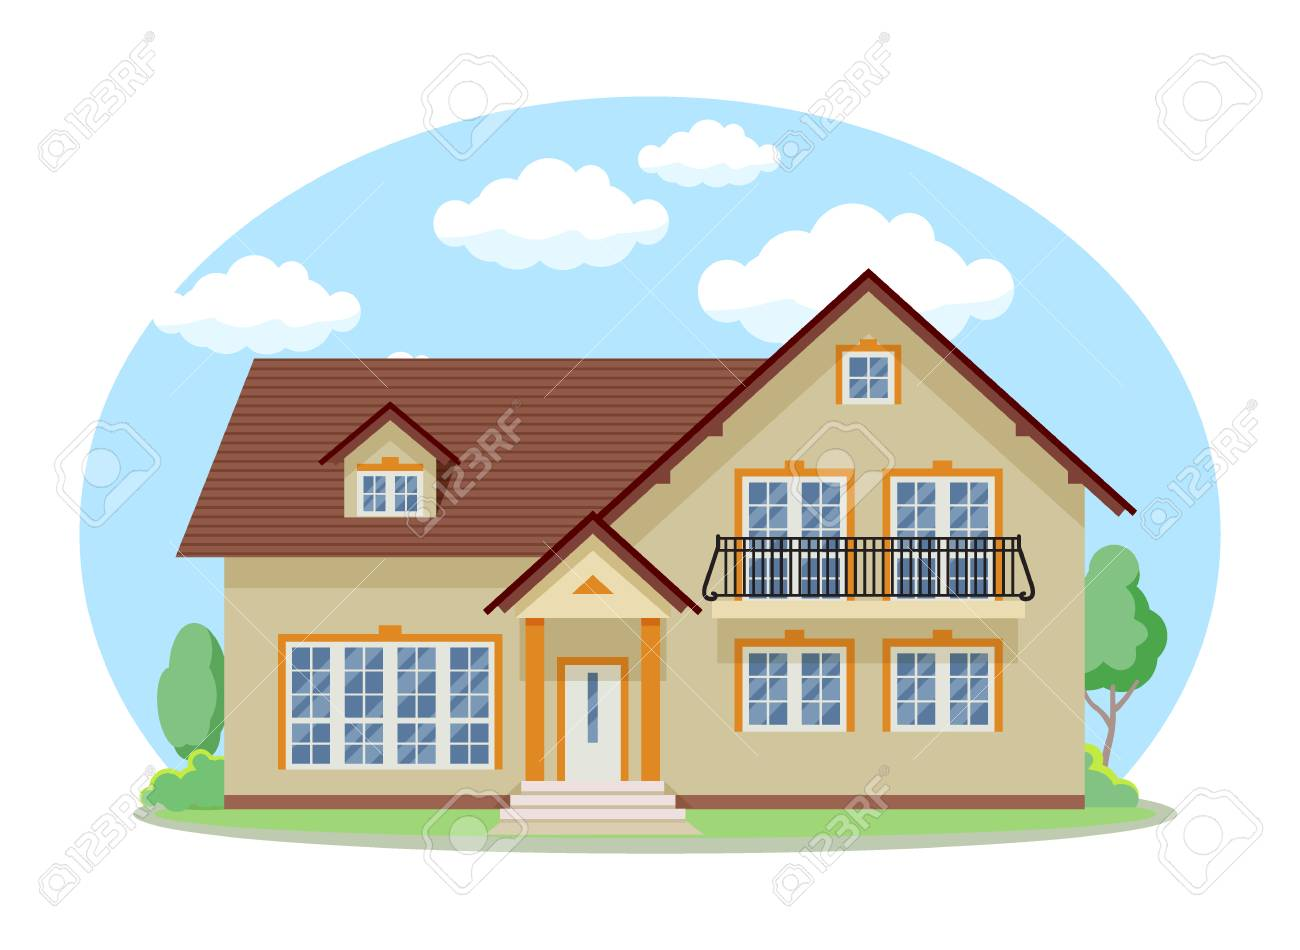 Cartoon House Exterior With Blue Clouded Sky Front Home Architecture Royalty Free Cliparts Vectors And Stock Illustration Image 114702193